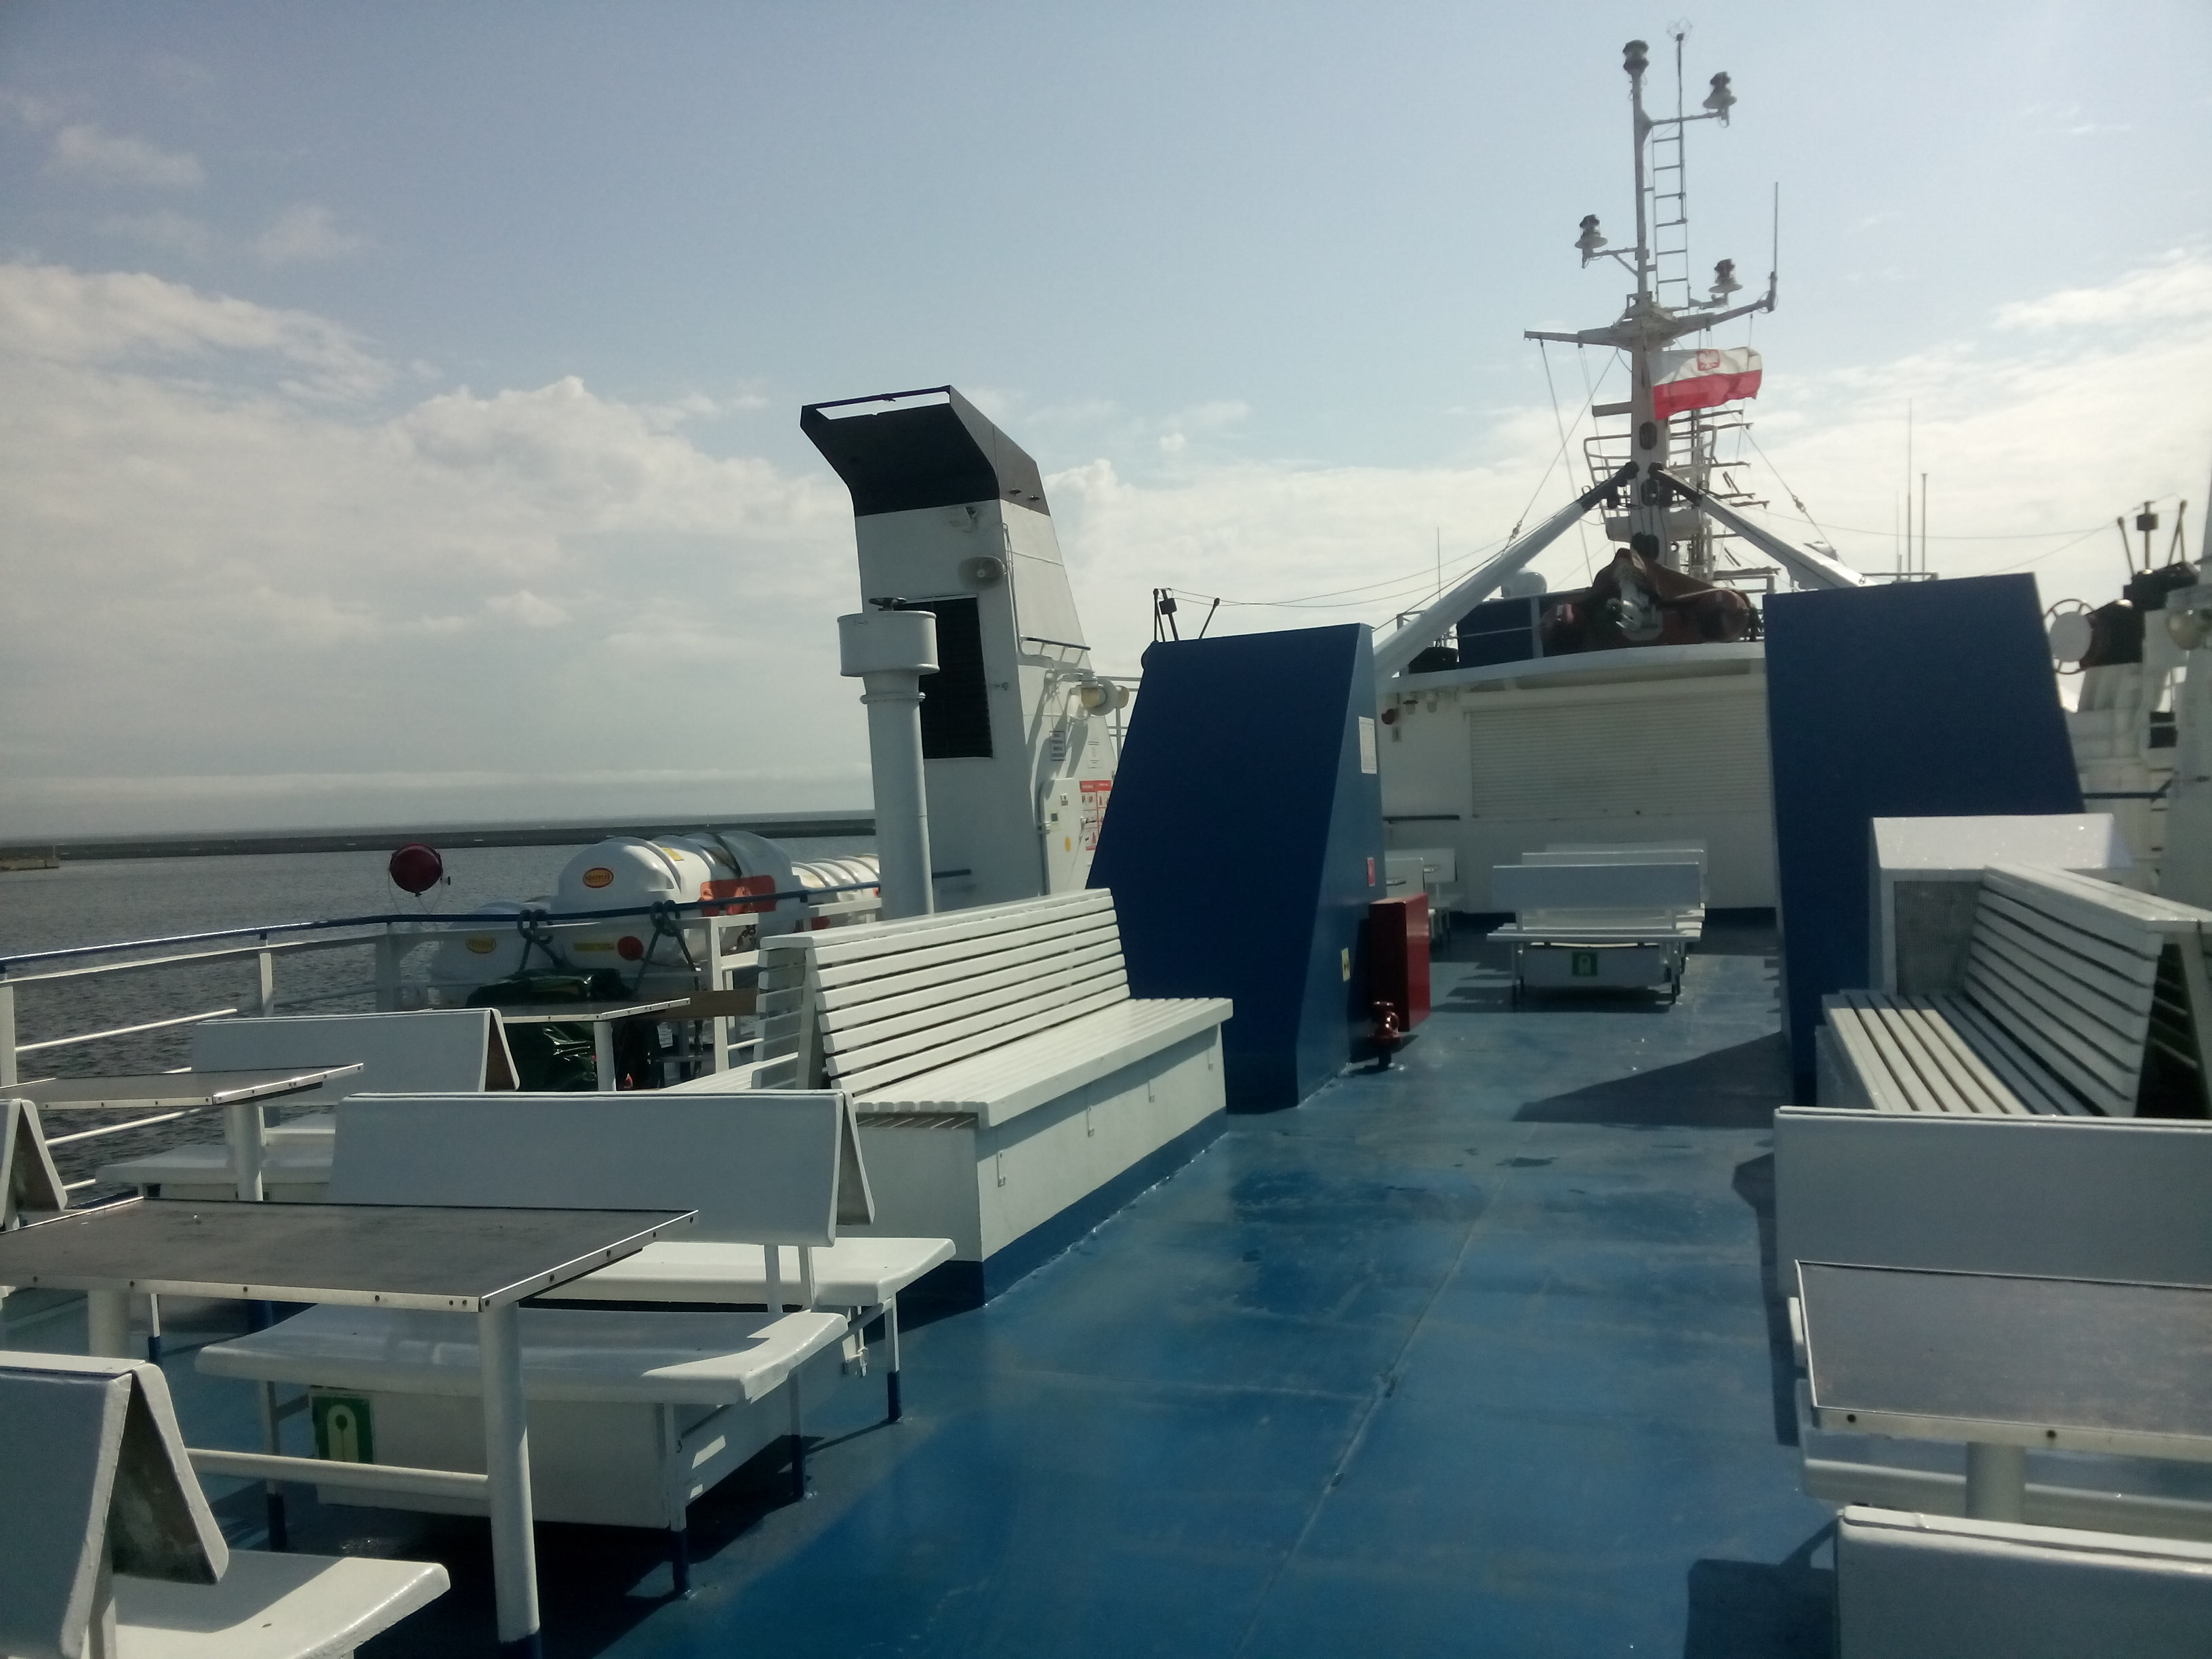 The top deck of a ferry with benches on